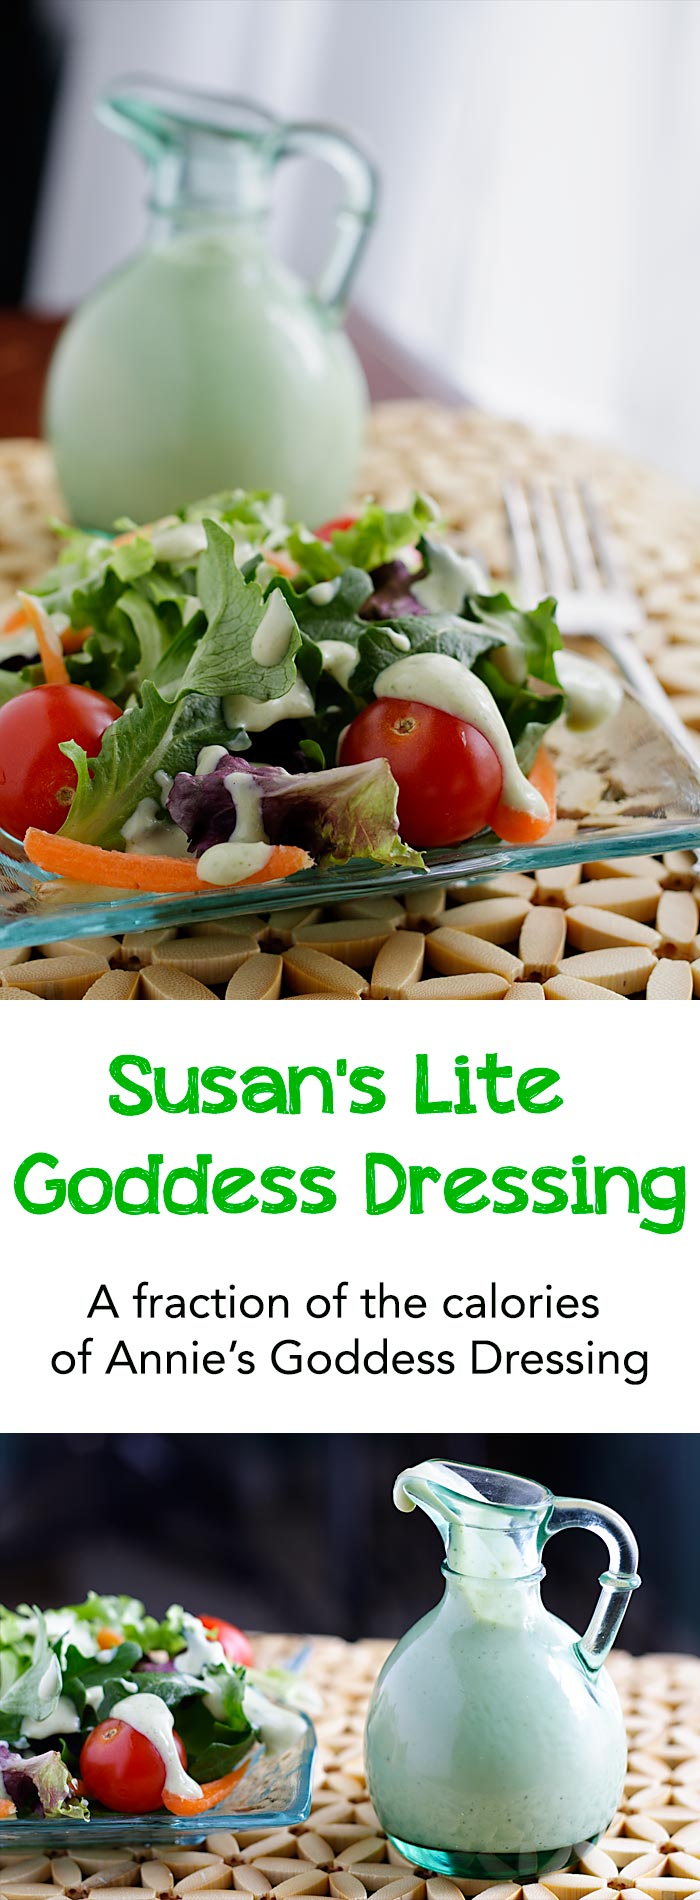 This lite version of Annie's Goddess dressing has about 1/7 the amount of calories as the original and 1/13th the fat!